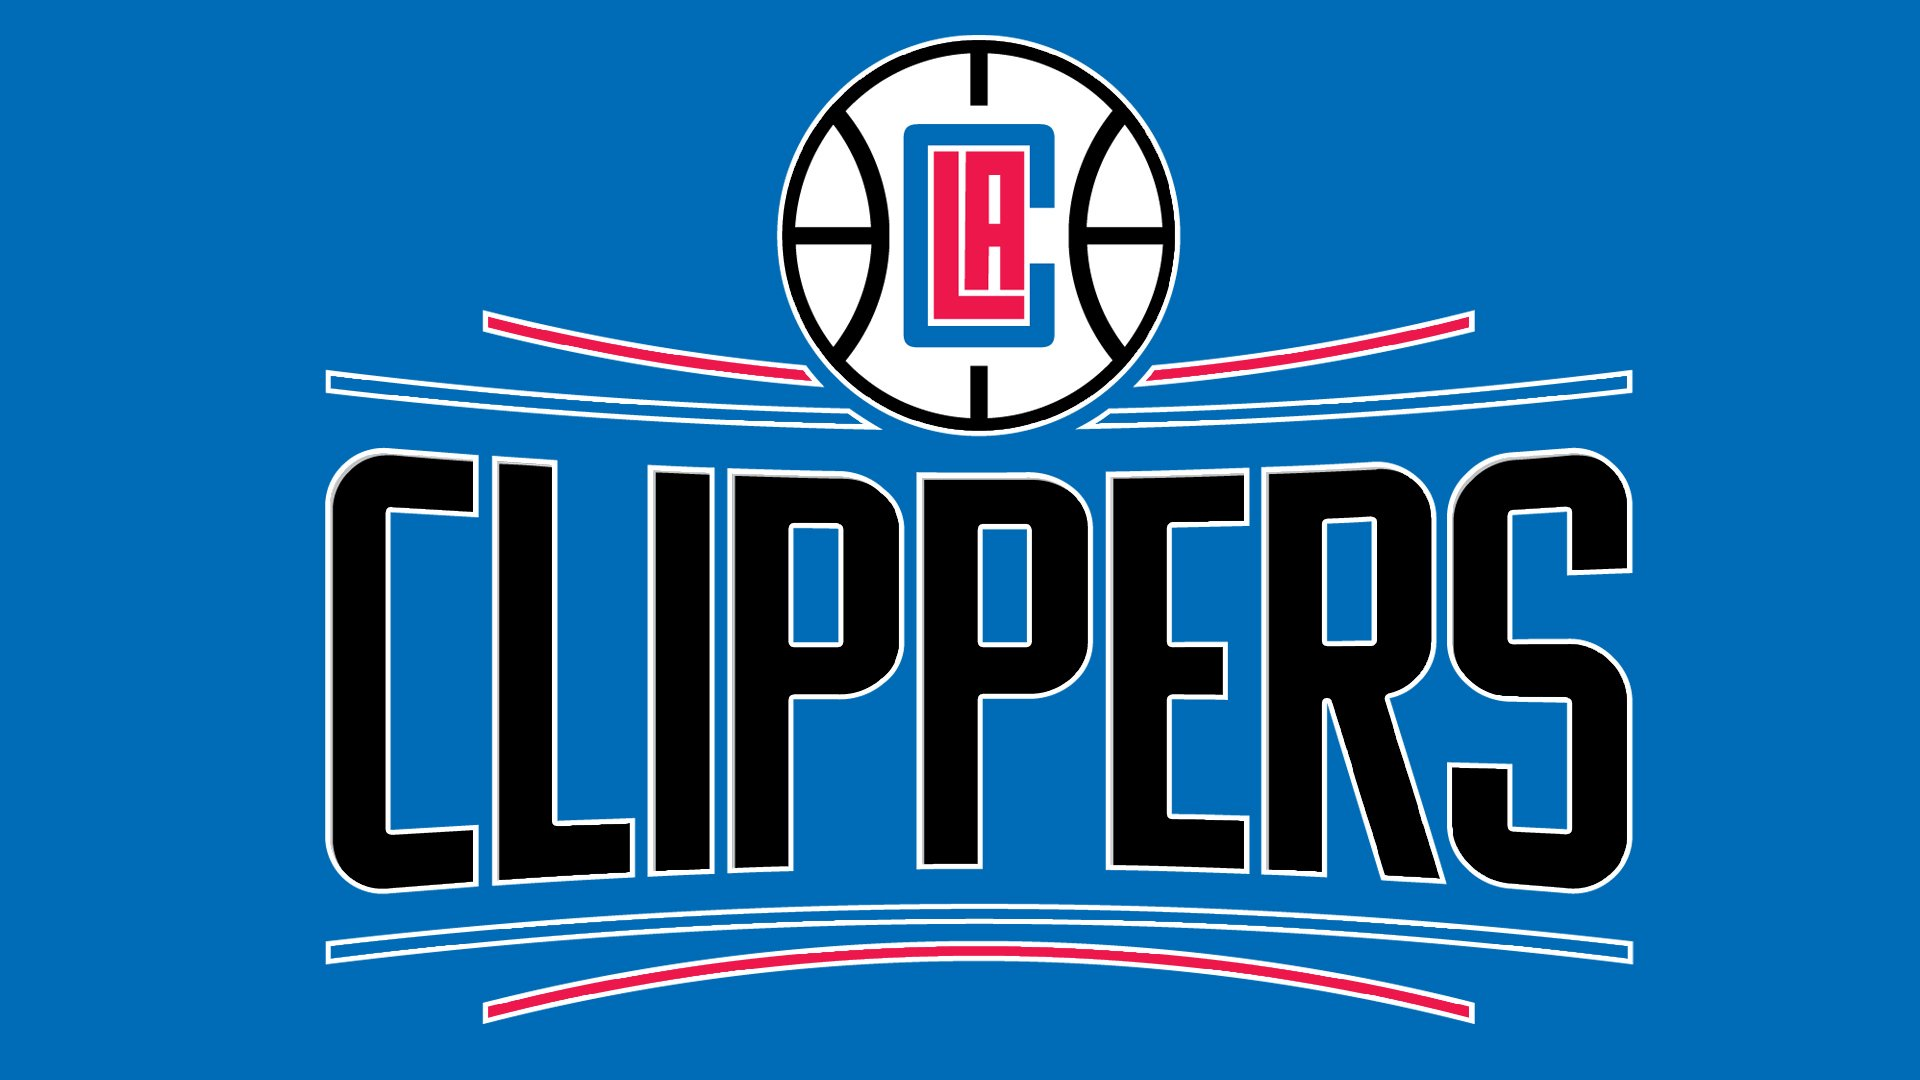 clippers - photo #17